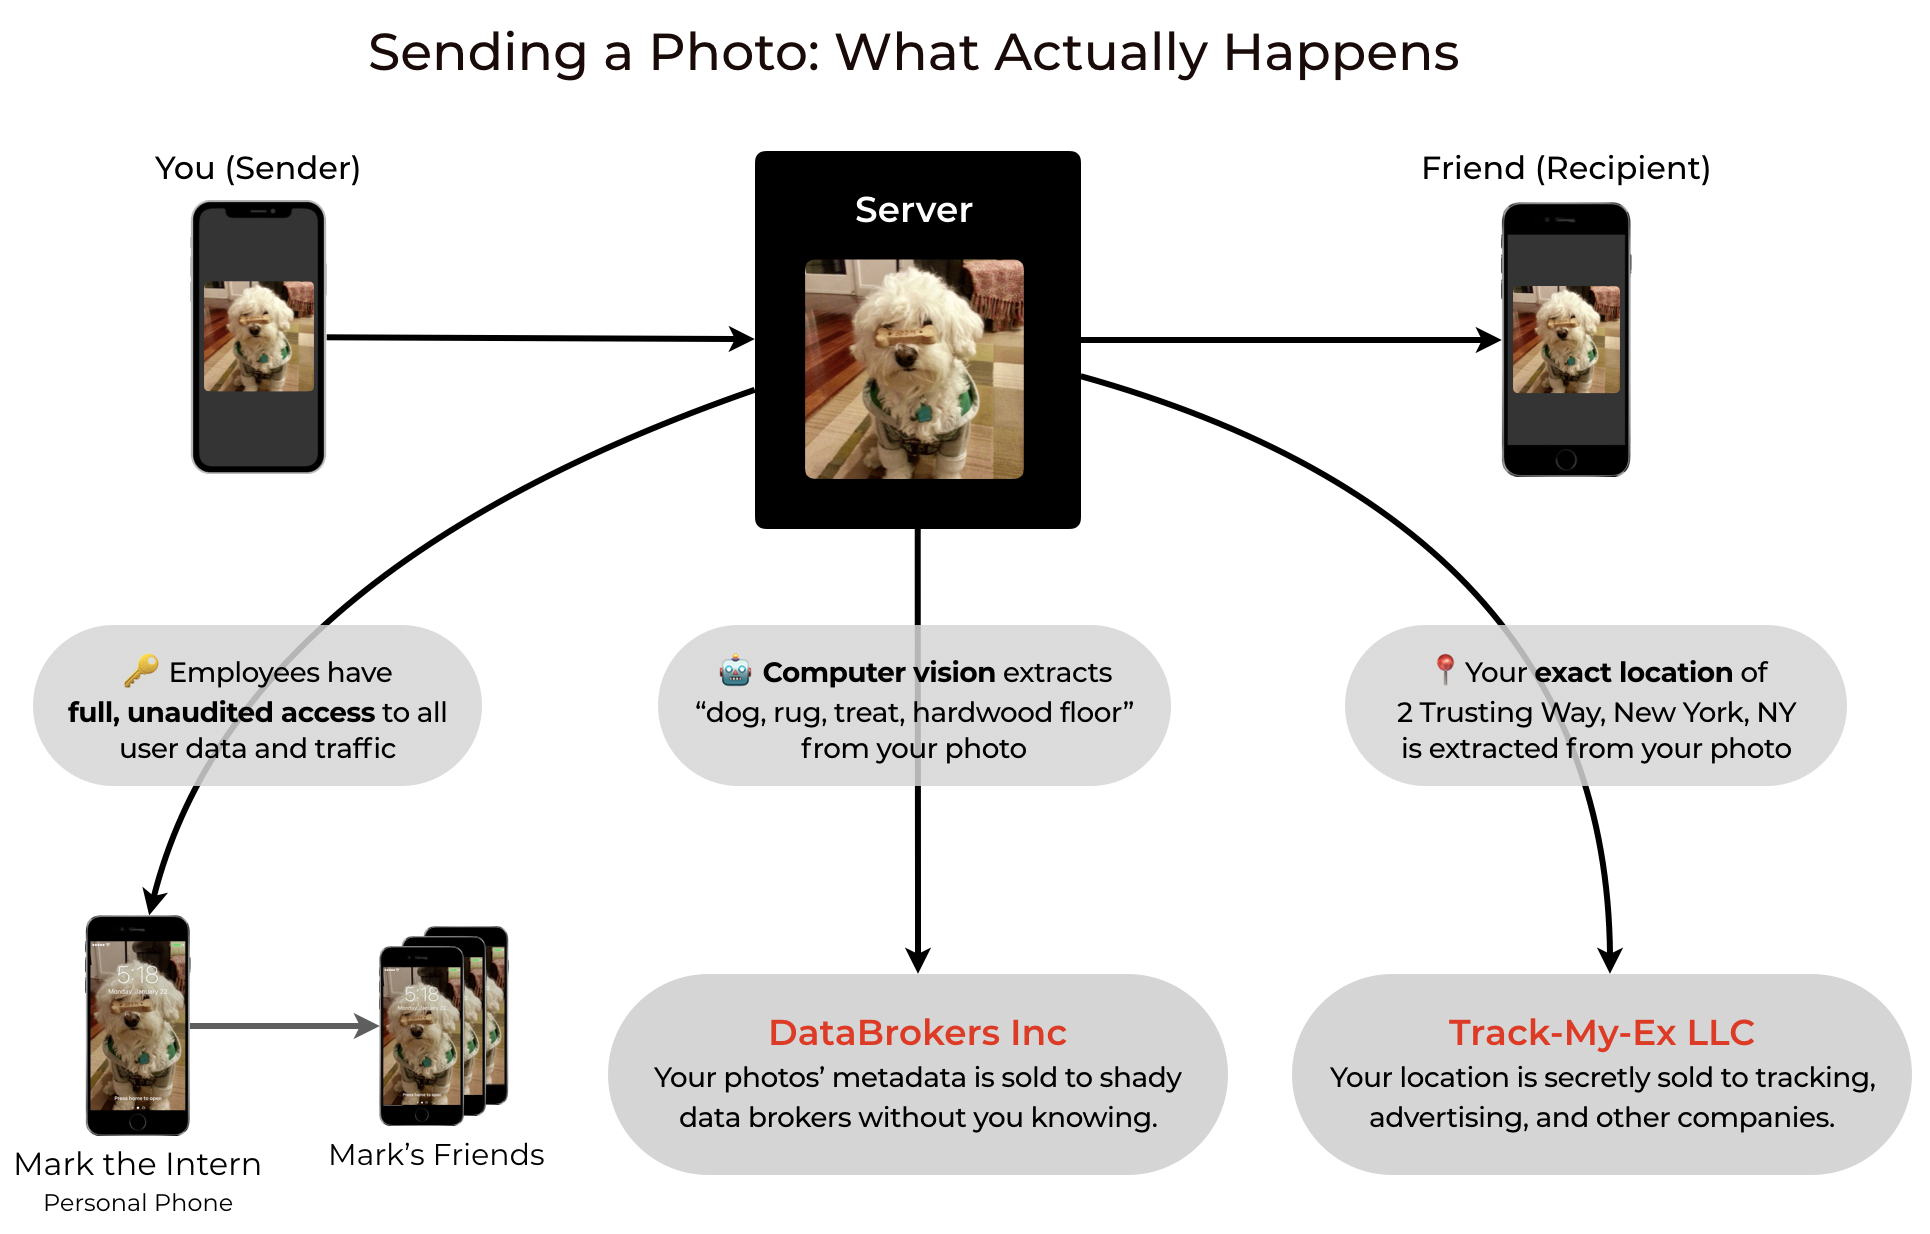 A photo is sent from a Sender device to a black box server, where its metadata is sent to data brokers, ad companies, and employees who have full access to the photo, and finally, to a Recipient device.